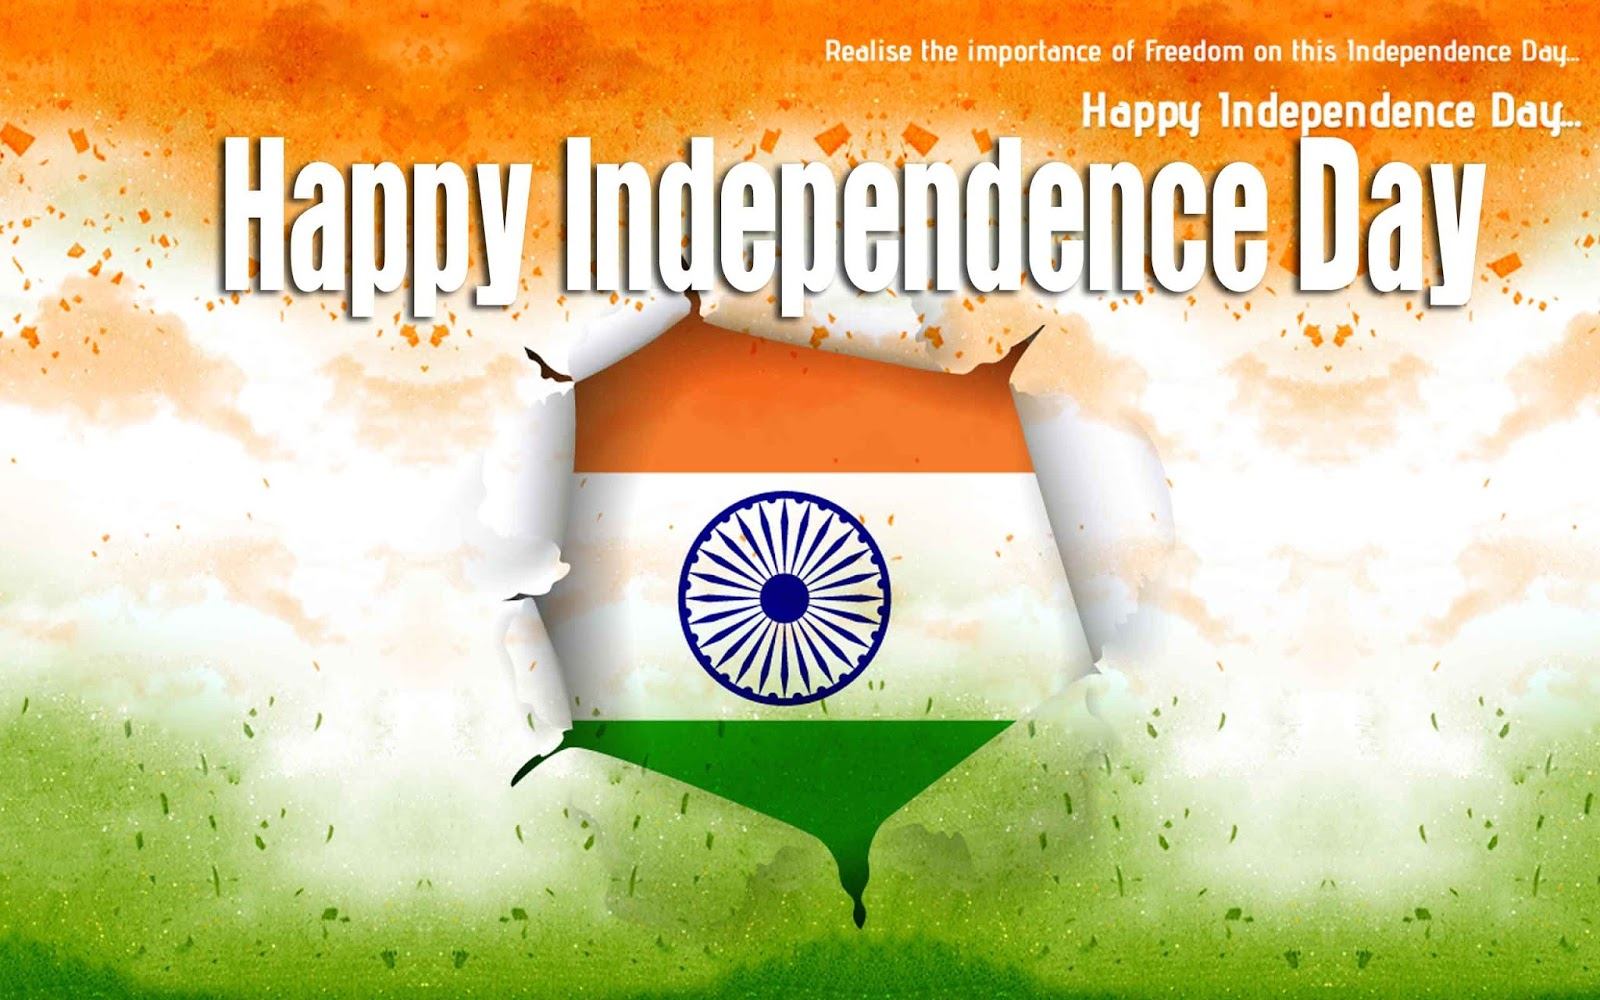 Telugu suktulu telugu quotes 2017 telugu independenceday quoteshappy independence day 2017 best independence day sms quotes whatsapp messages to send happy independence day wishes kristyandbryce Gallery